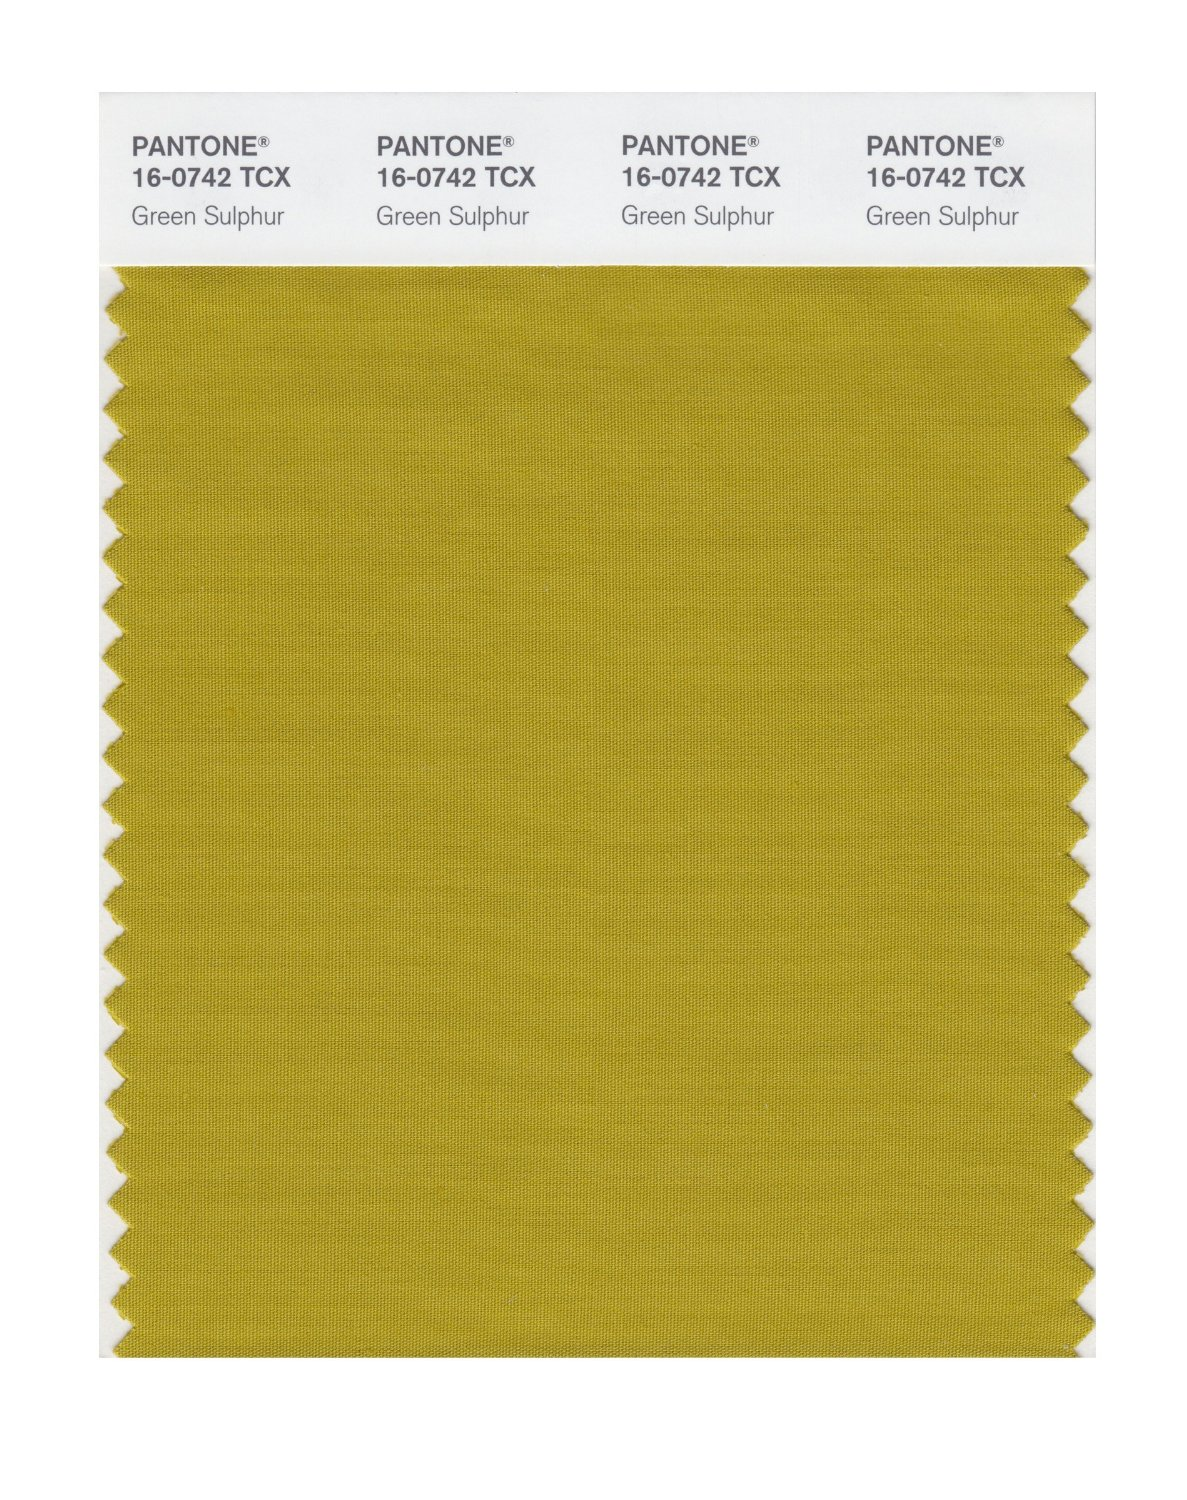 Pantone Smart Swatch 16-0742 Green Sulphur